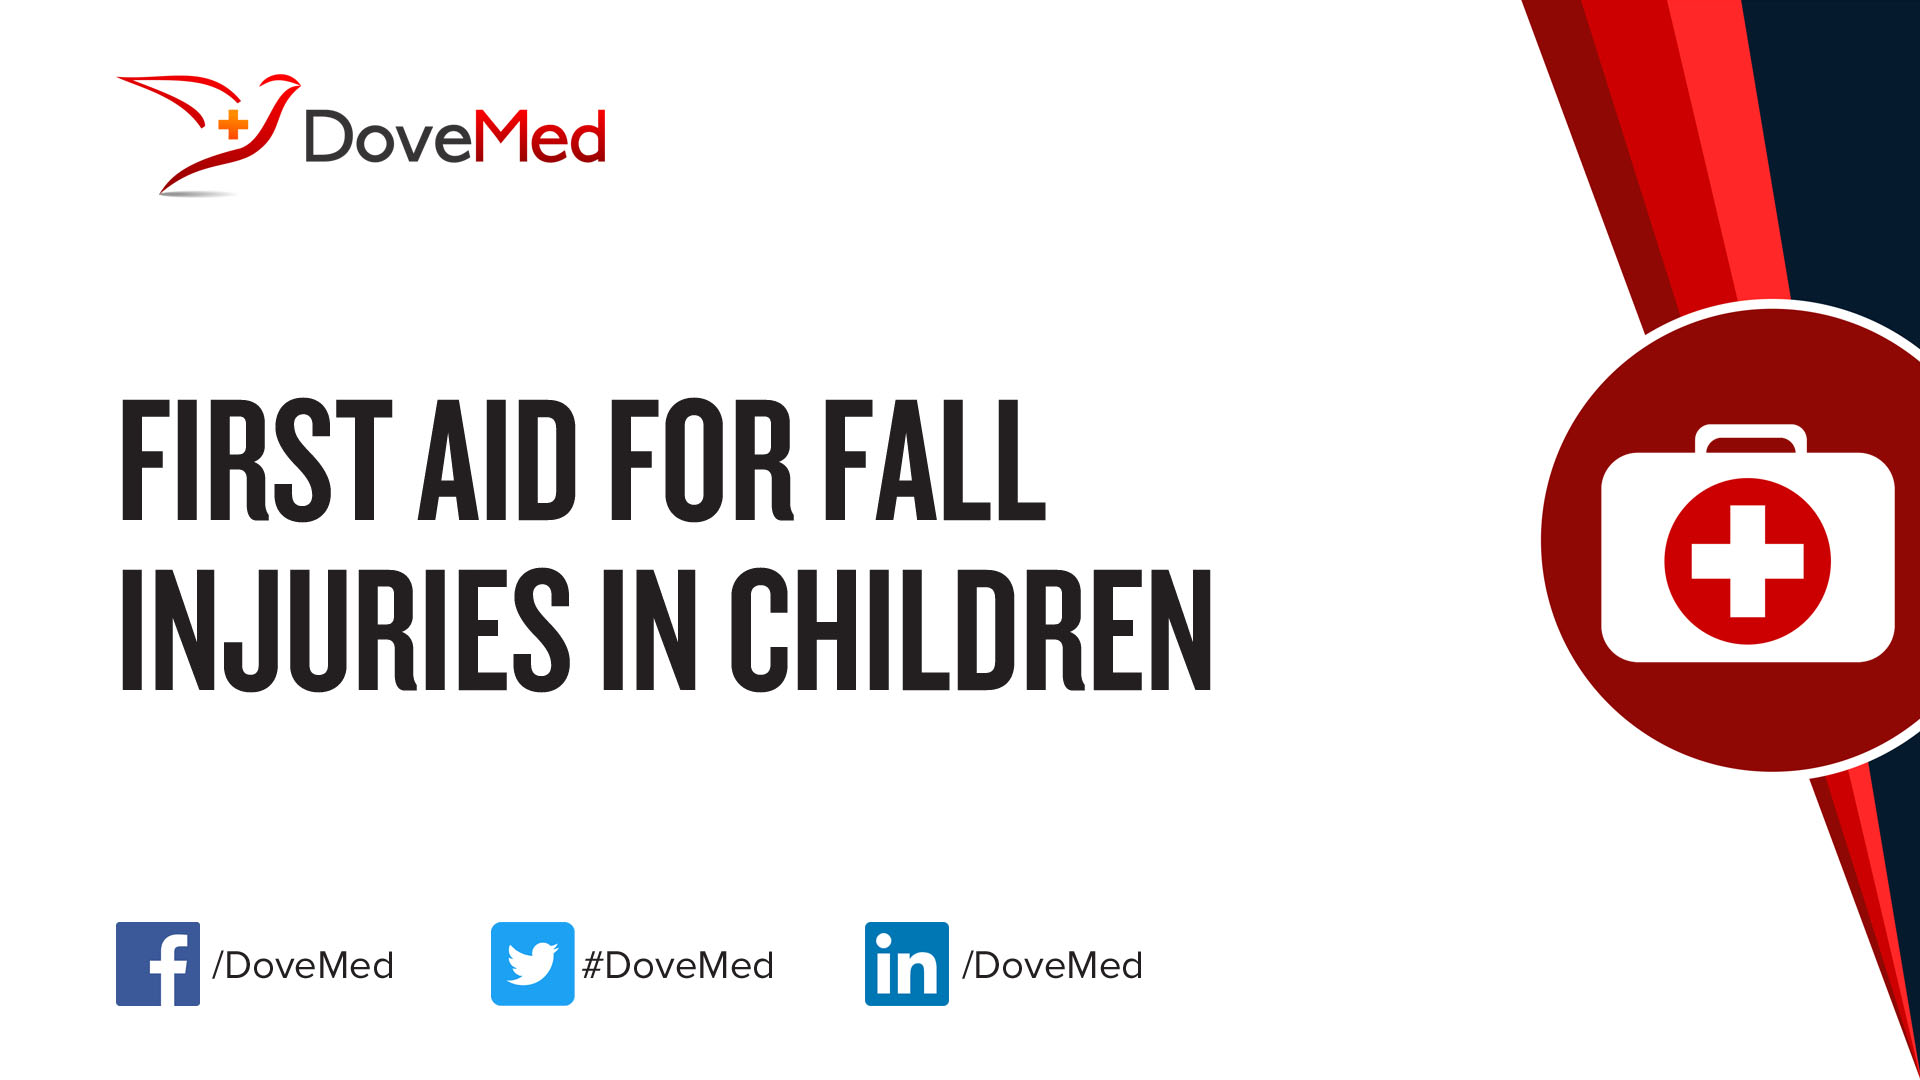 Injuries in children: how to provide first aid